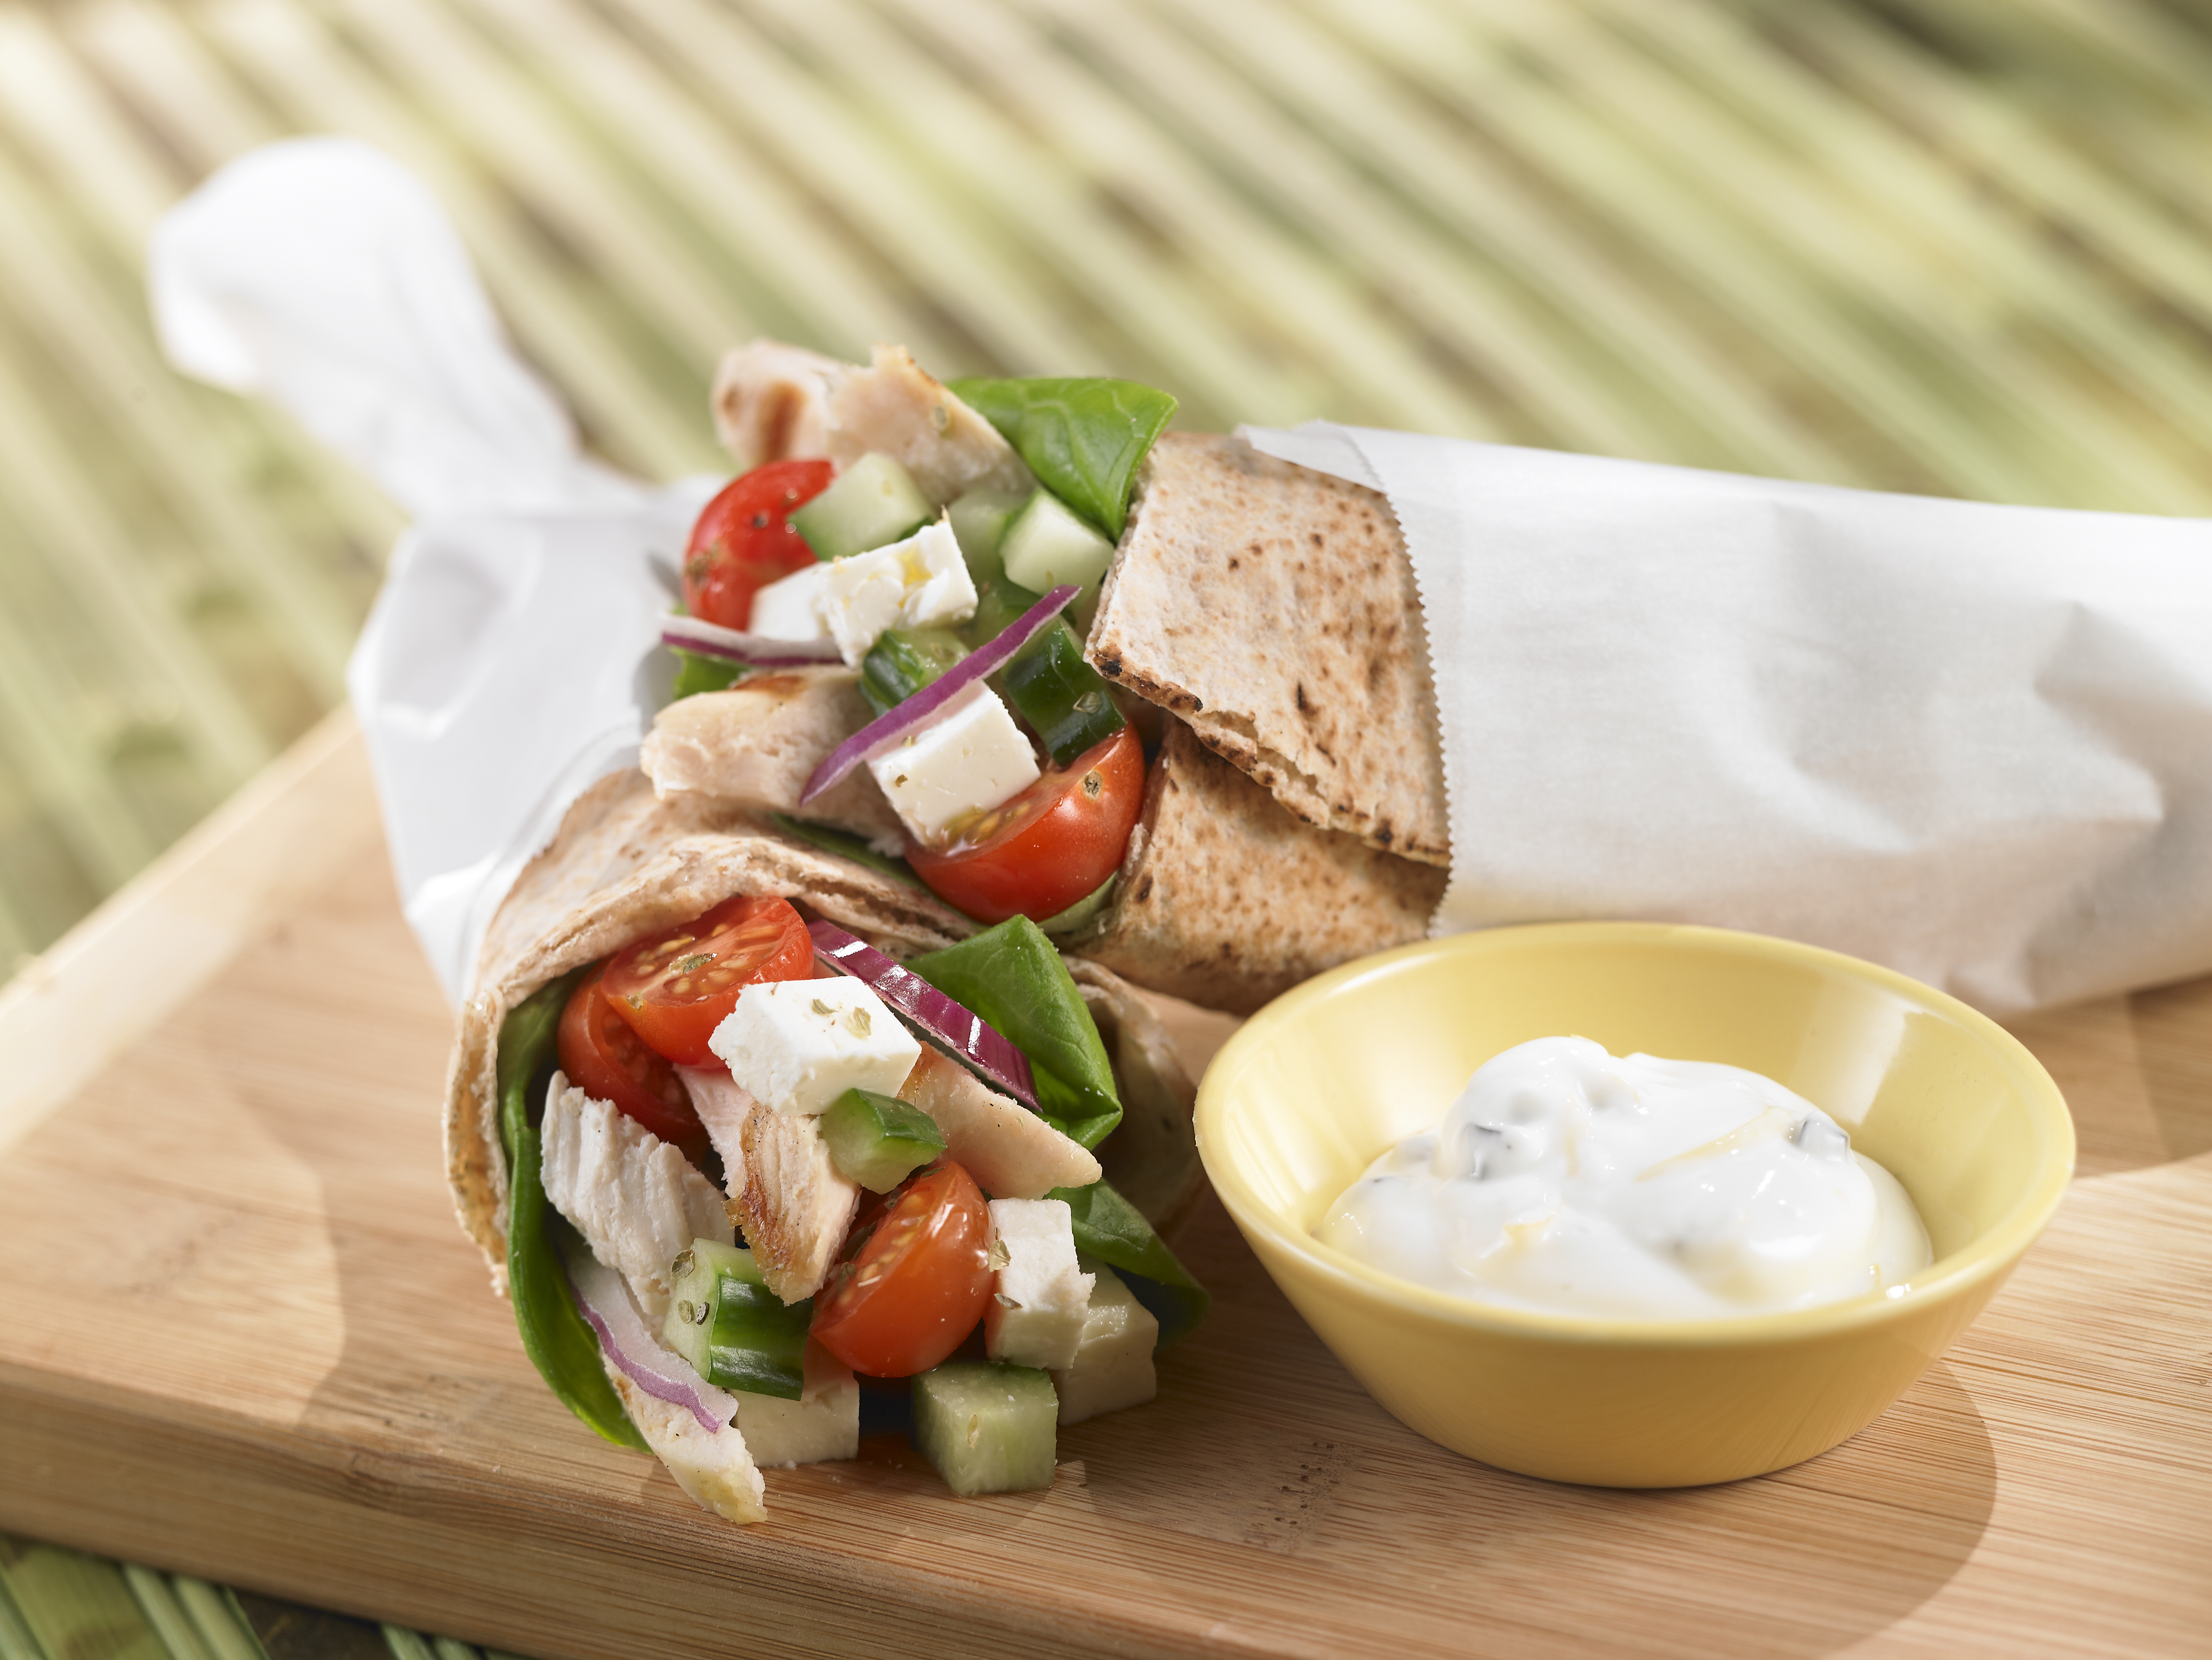 Greek, veggie and chicken wrap on a cutting board